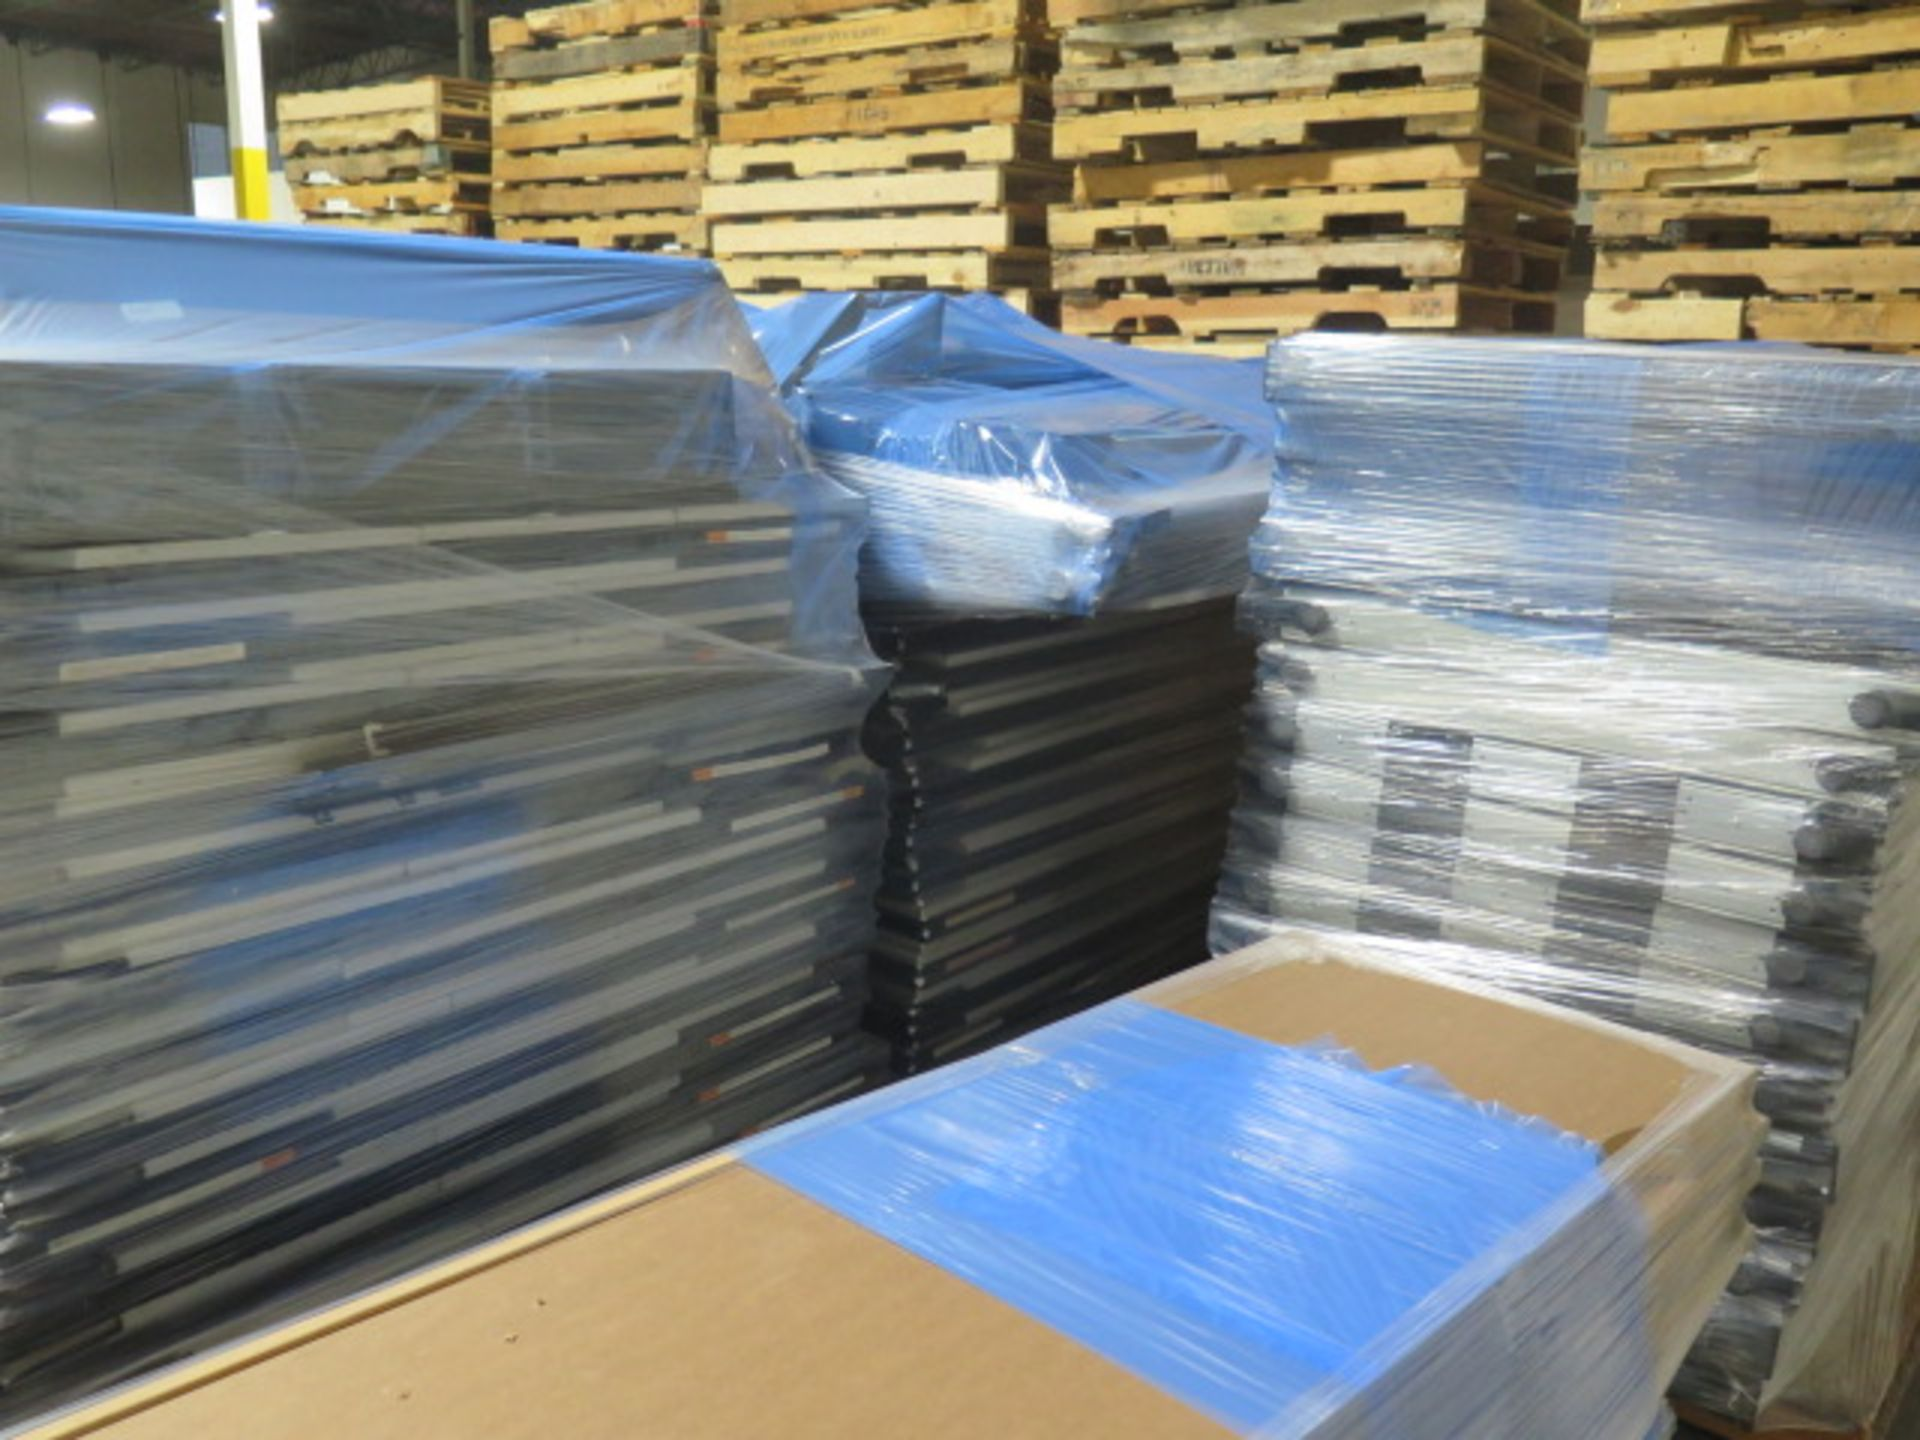 Large Quantity of Office Partitions, Desks, File Cabinets and Storage Cabinets (SOLD AS-IS - NO WARA - Image 9 of 24